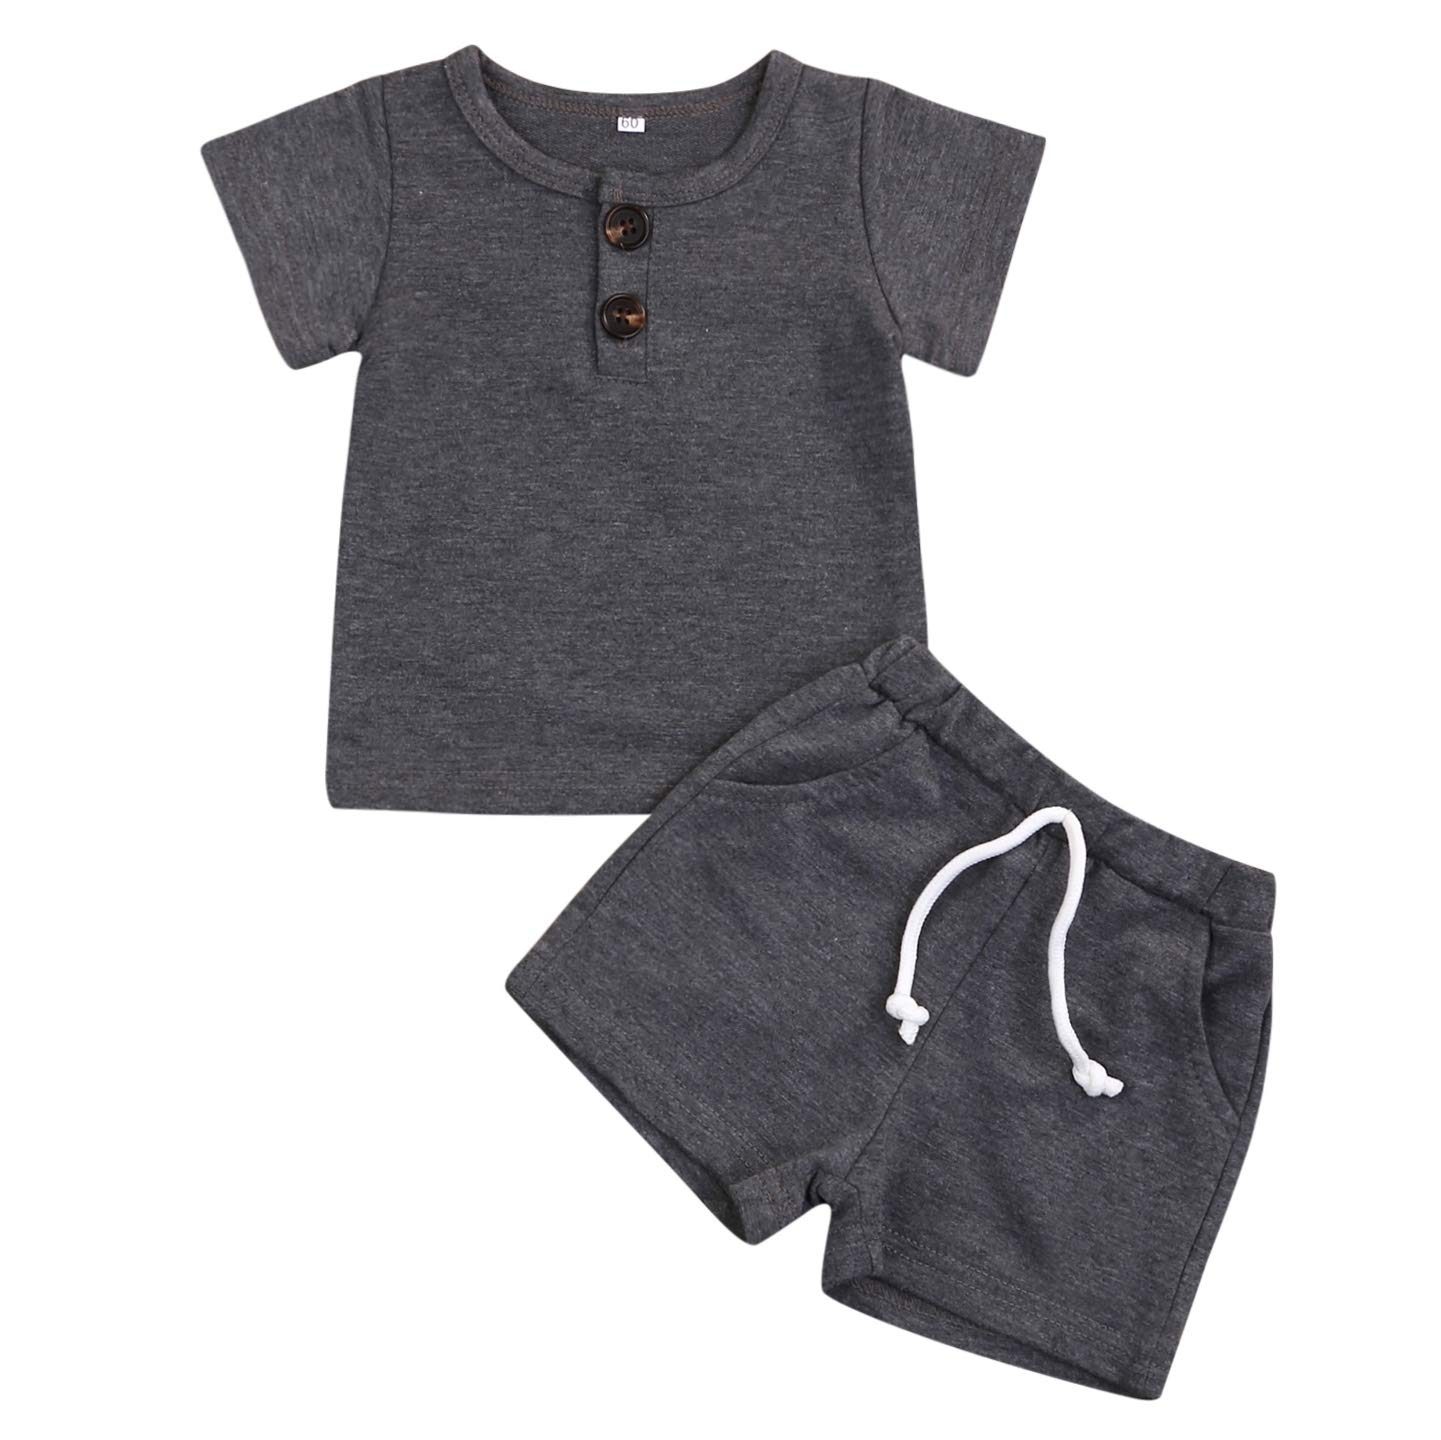 Kids Toddler Infant Baby Boys Girls Summer Shorts Outfits Cotton Button T-Shirt Tops+Short Pants 2Pc Clothes Set